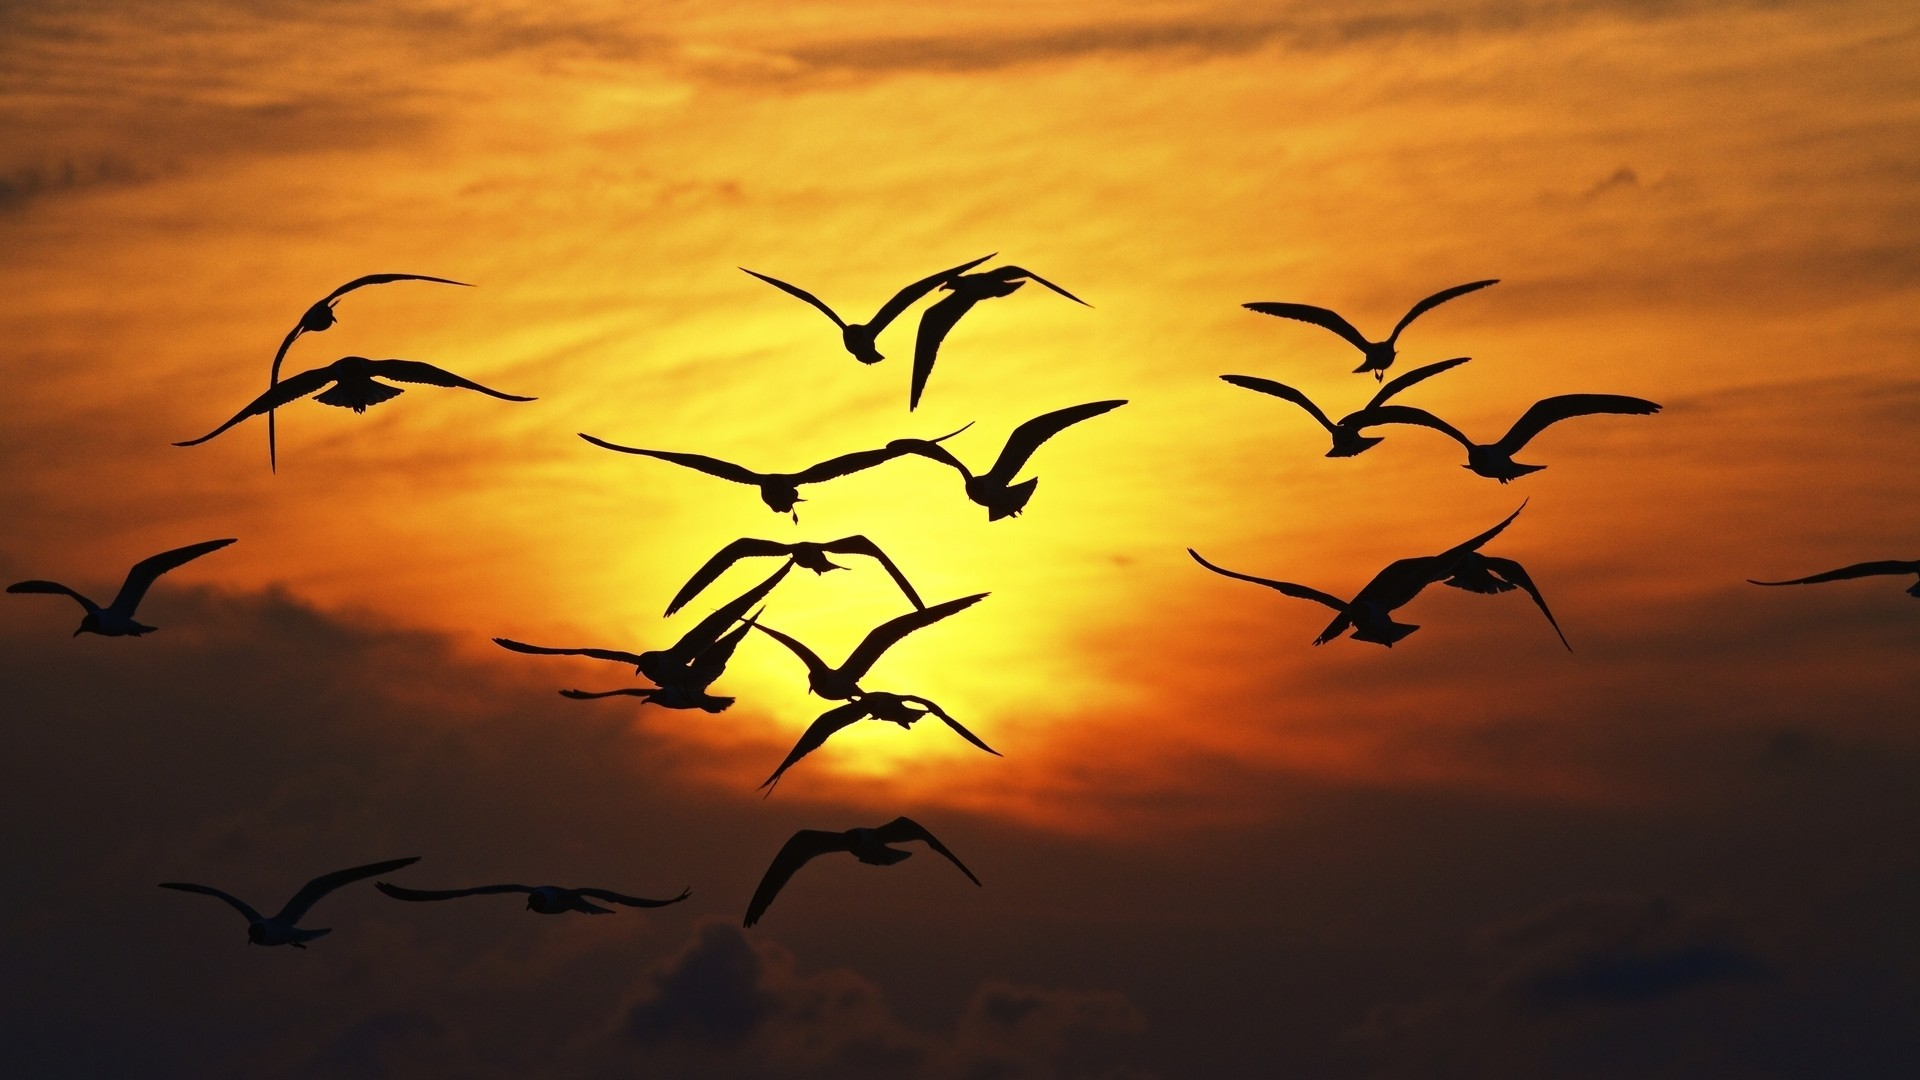 Gulls in The Sunset Sky – Photography Wallpapers